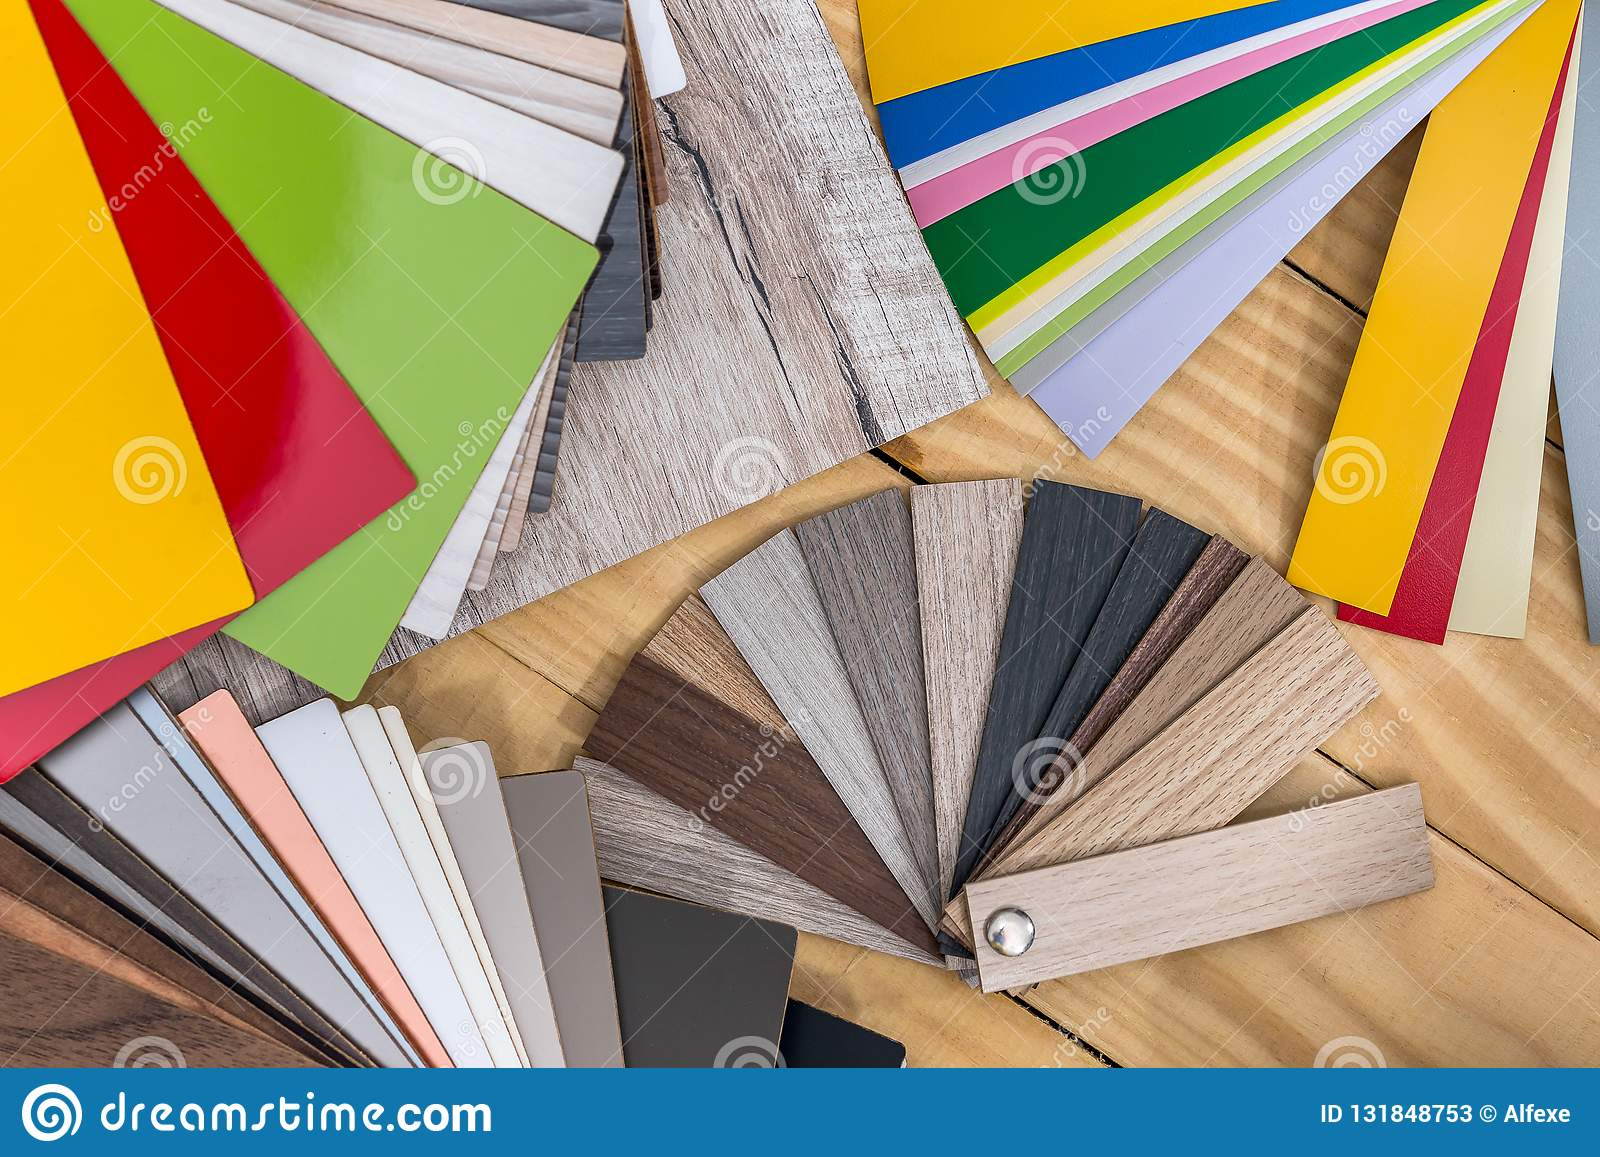 Plastic colour swatches for furniture on wooden background